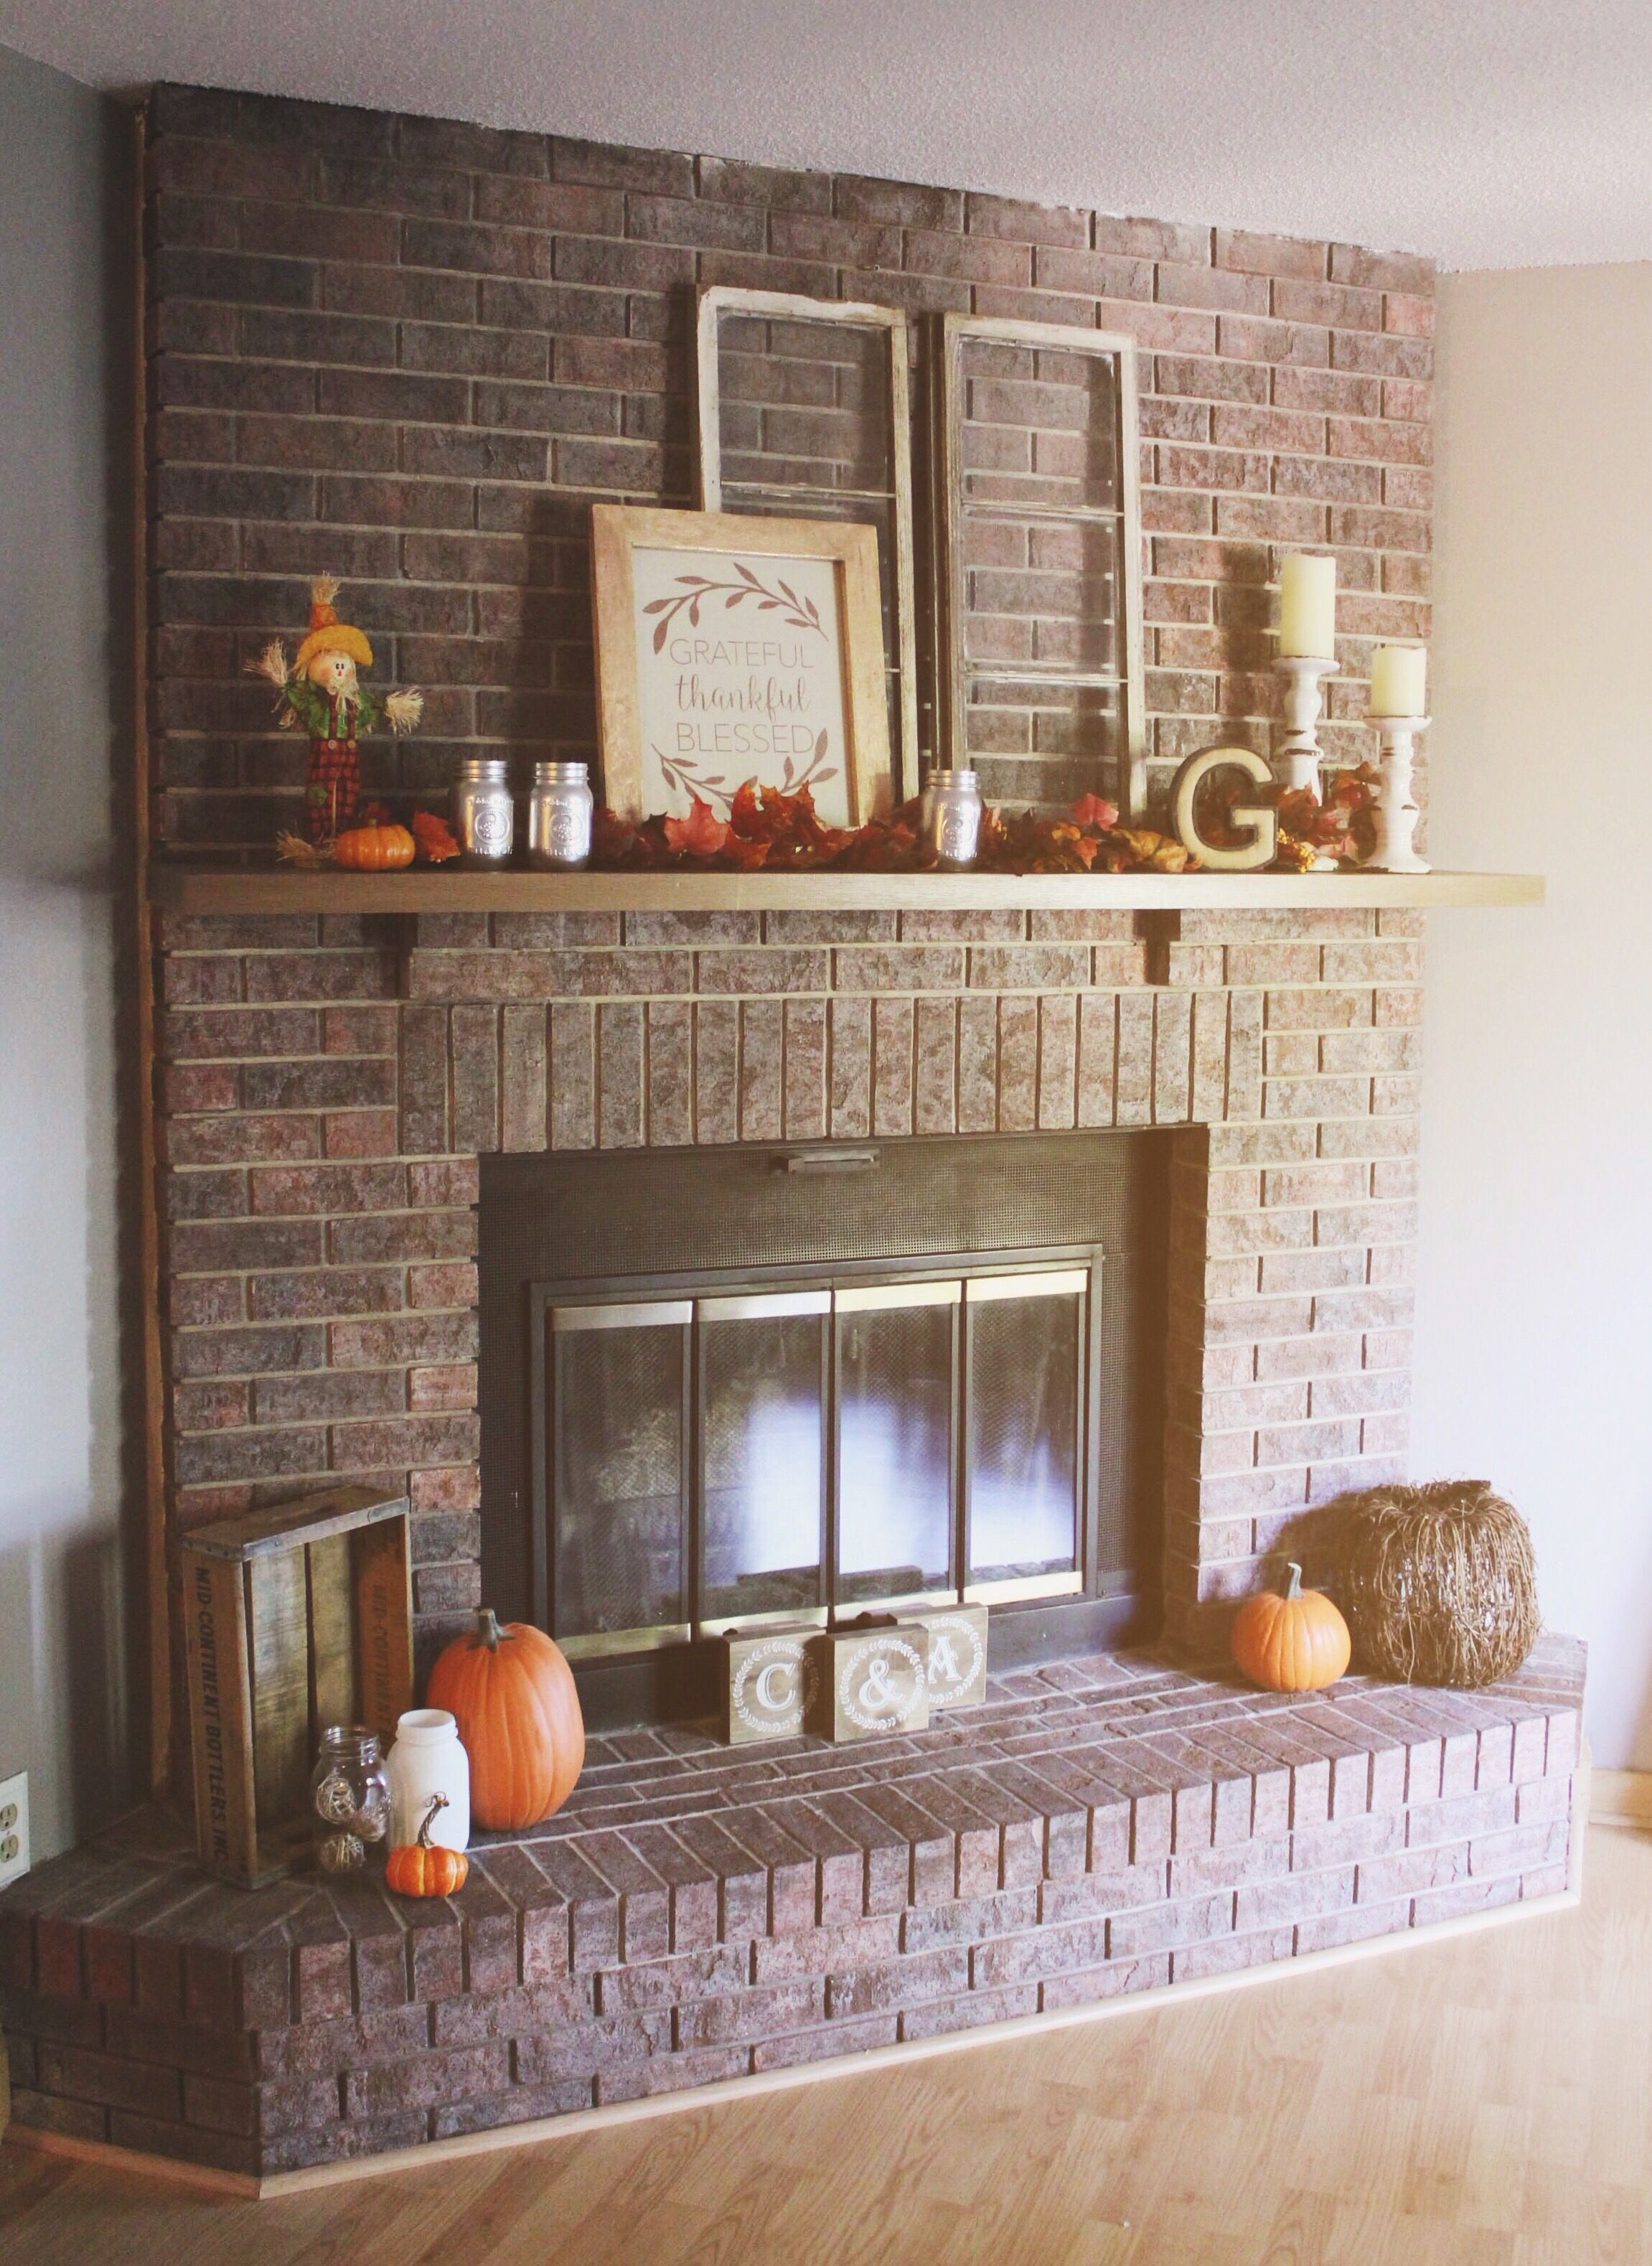 Our Cozy Rustic Chic Fall Red Brick Fireplace Mantel Decor